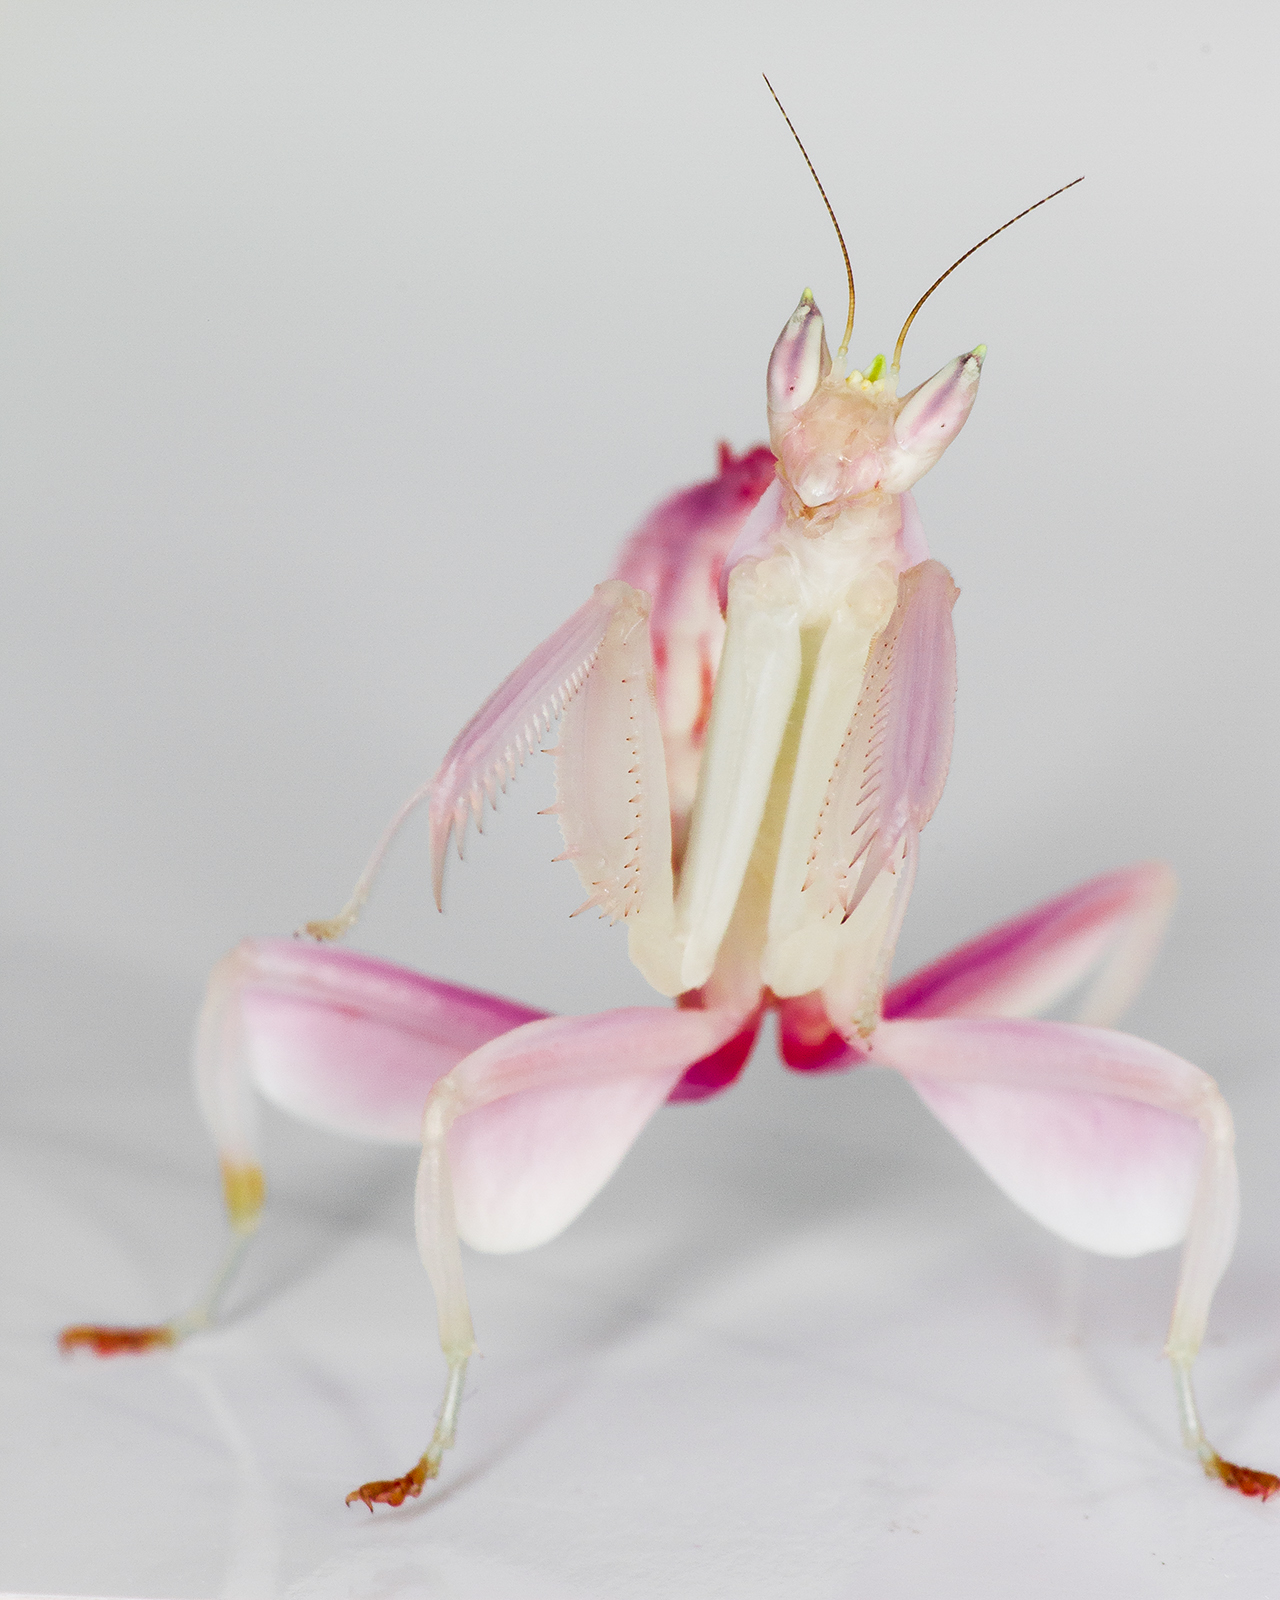 praying mantis essay photo adventures curiosity and learning